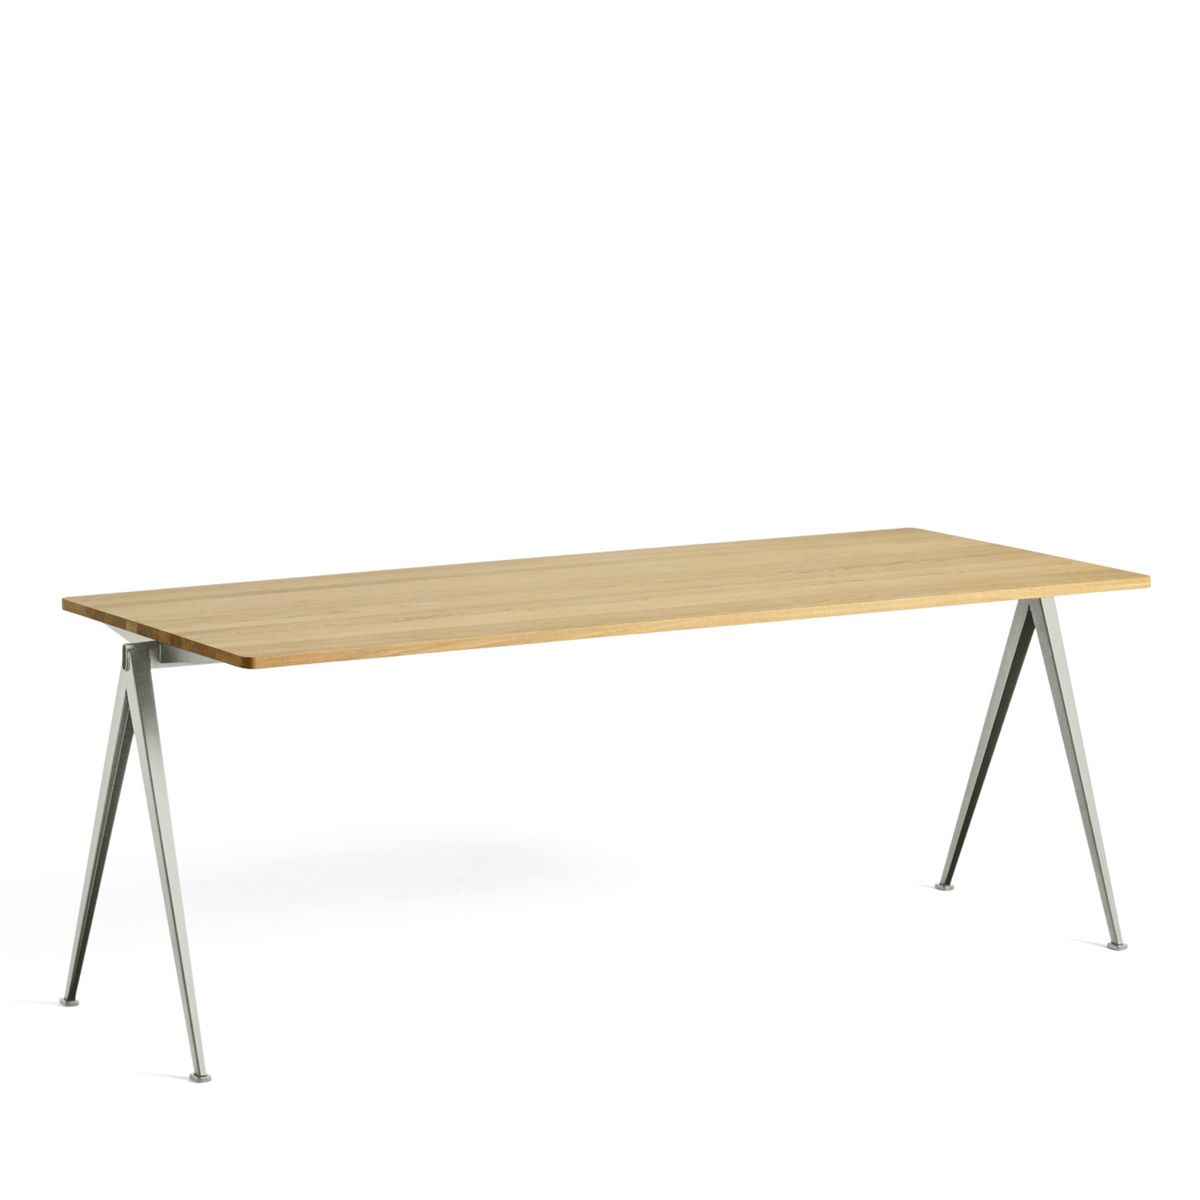 Pyramid Table 2000mm